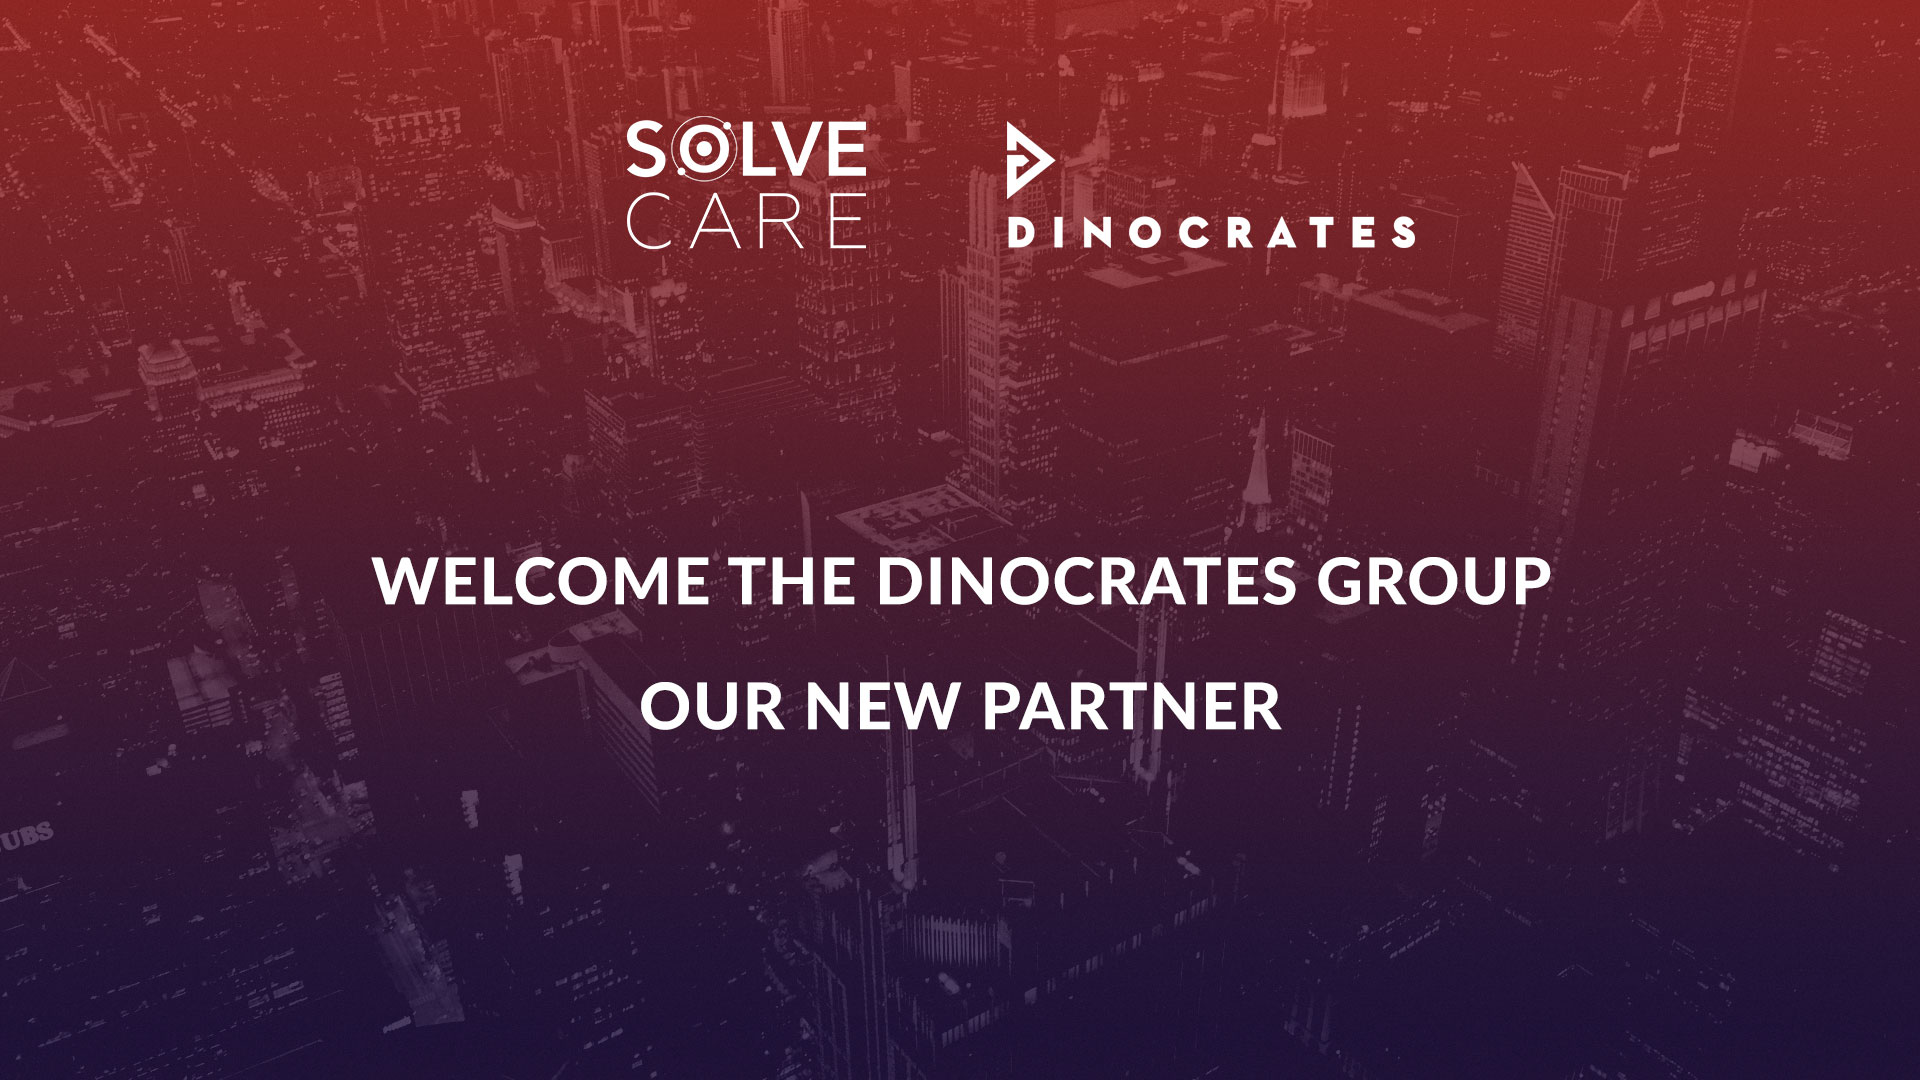 Solve.Care welcomes new partner The Dinocrates Group